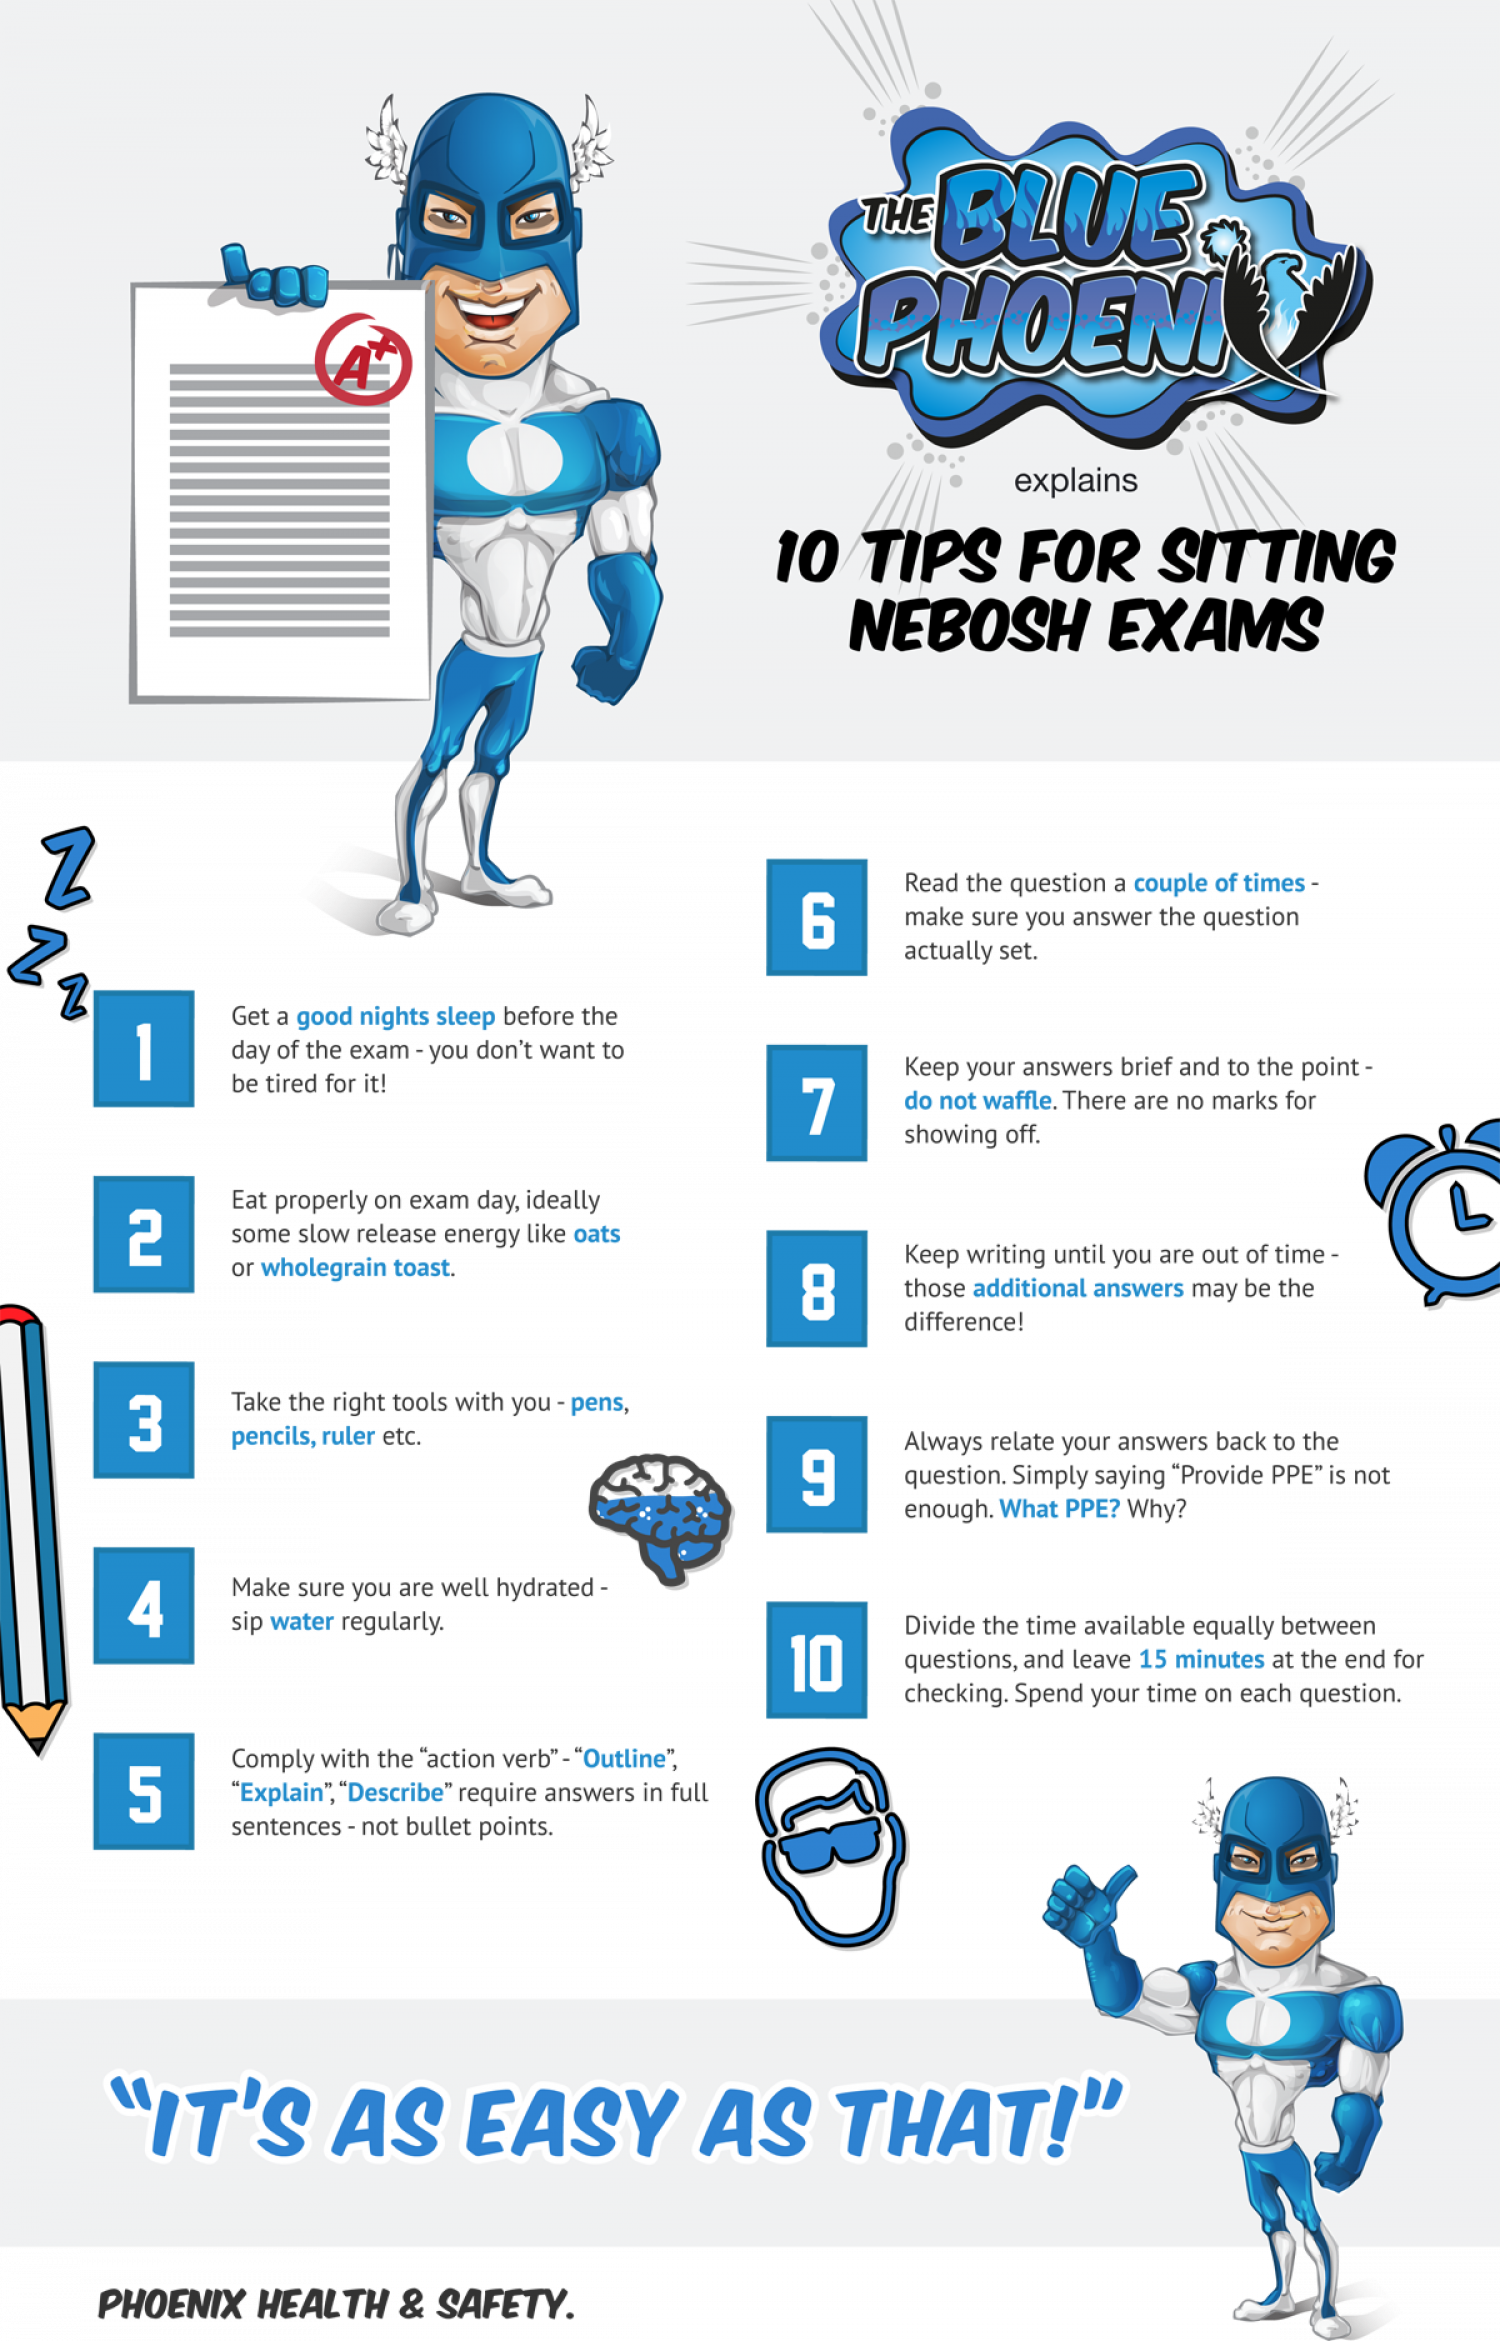 10 Tips for Sitting NEBOSH Exams Infographic